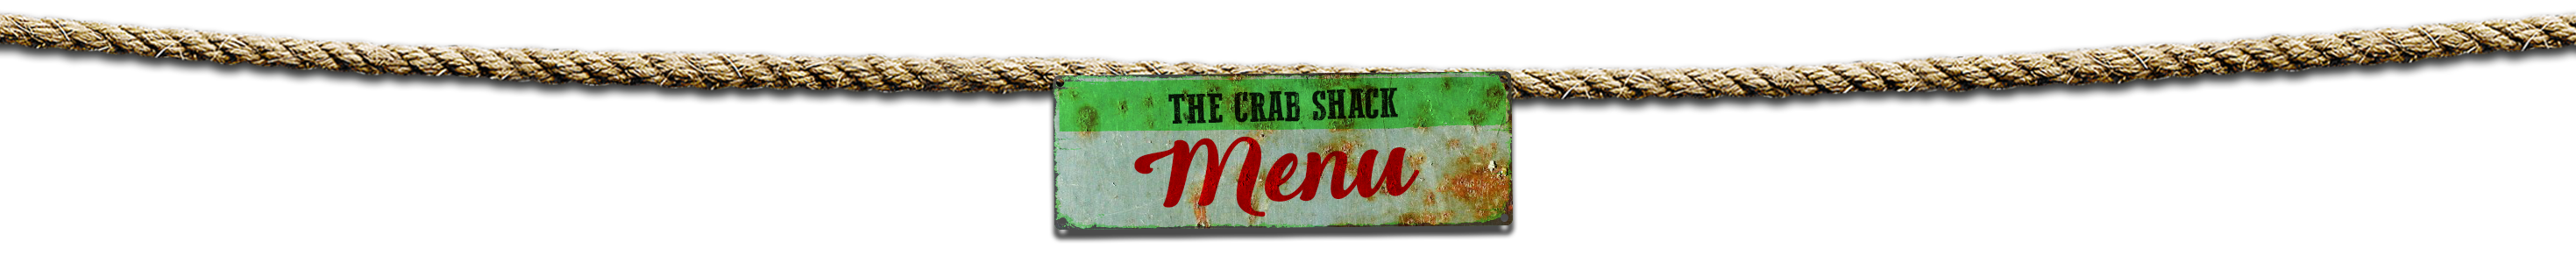 menu-the-crab-shack